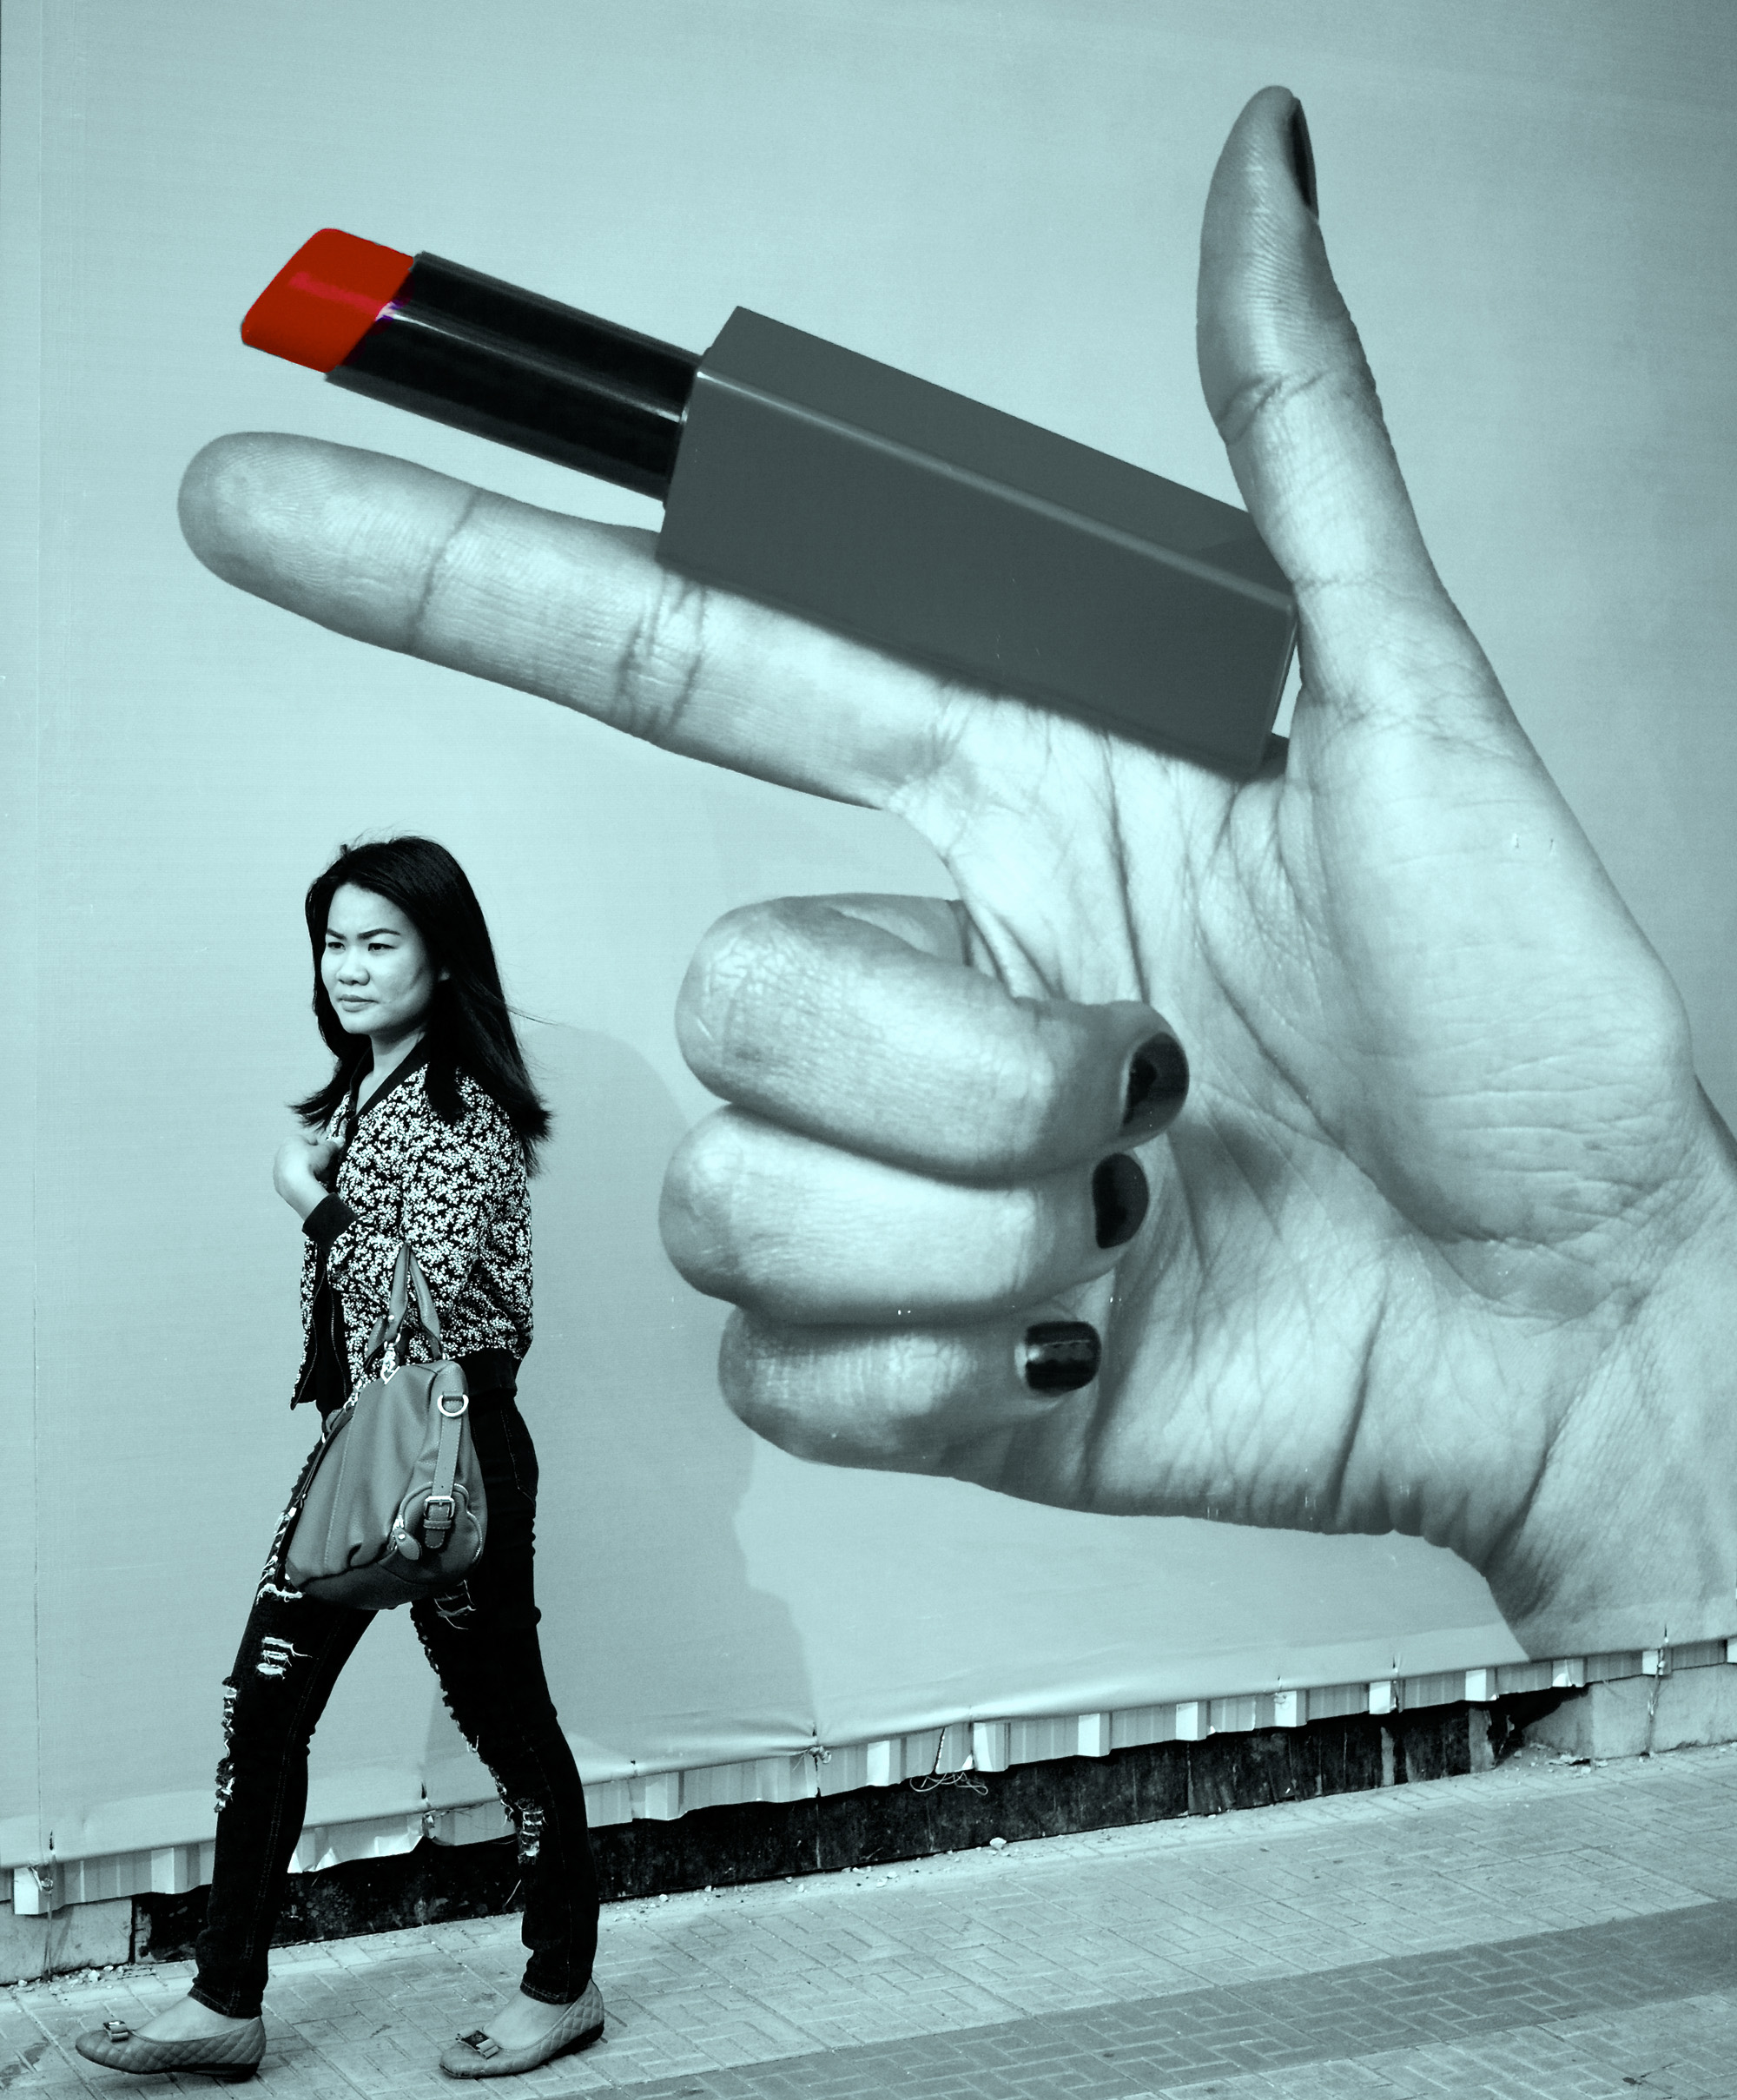 woman walks past a poster featuring a gigantic hand holding a lipstick as if it were a gun